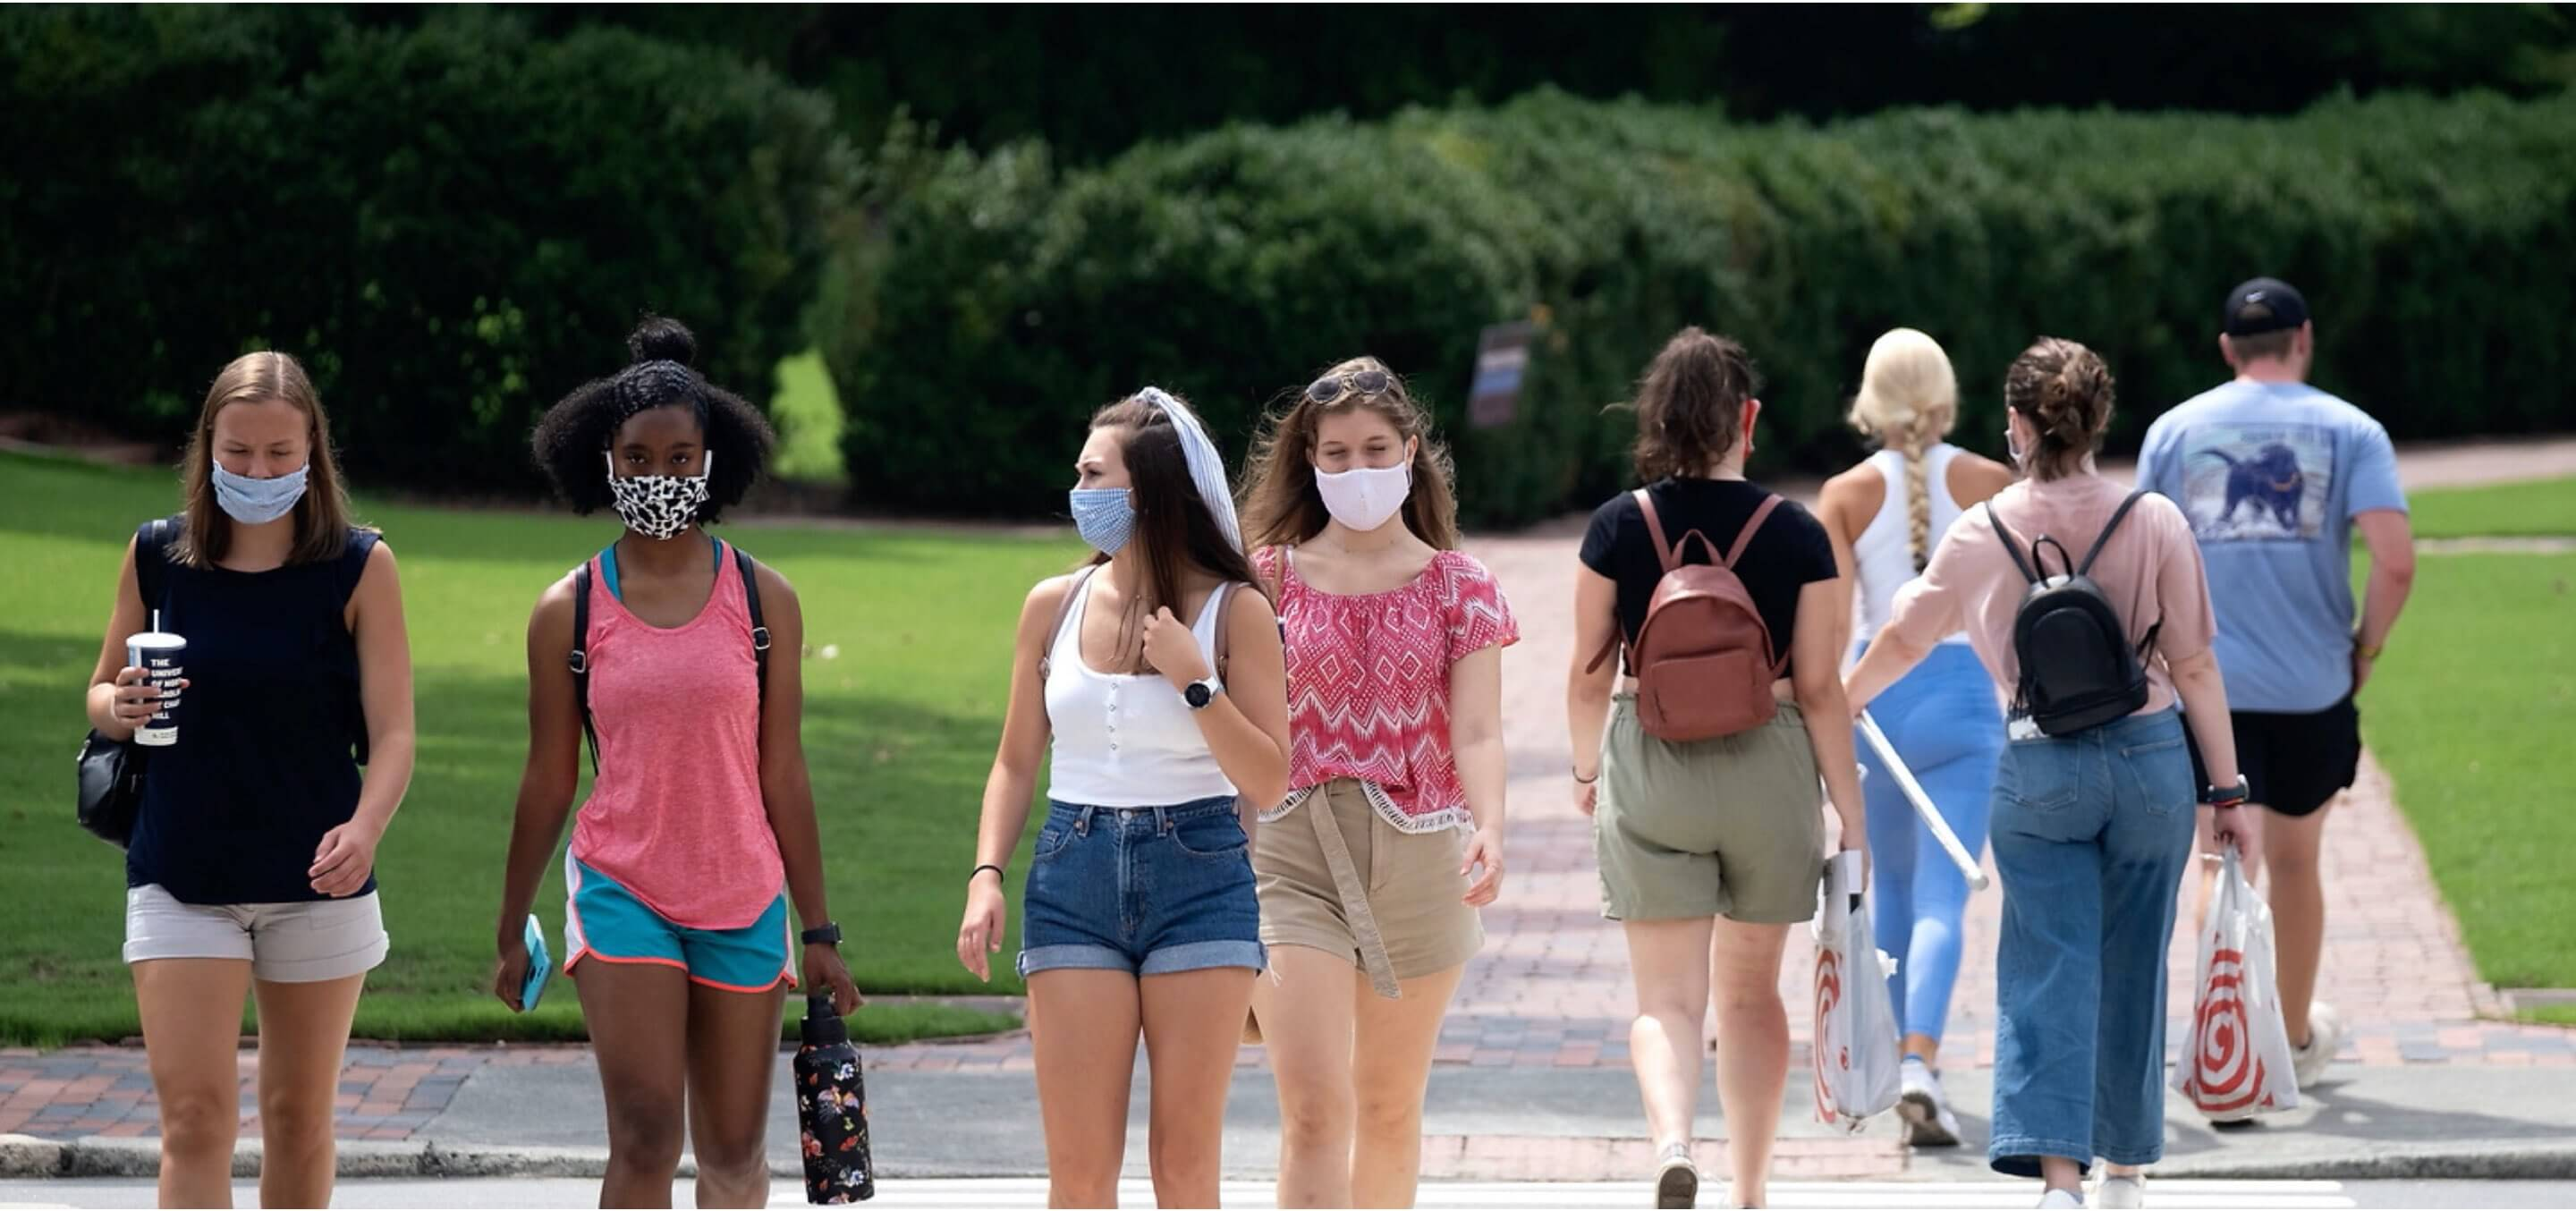 Students walking in groups wearing masks